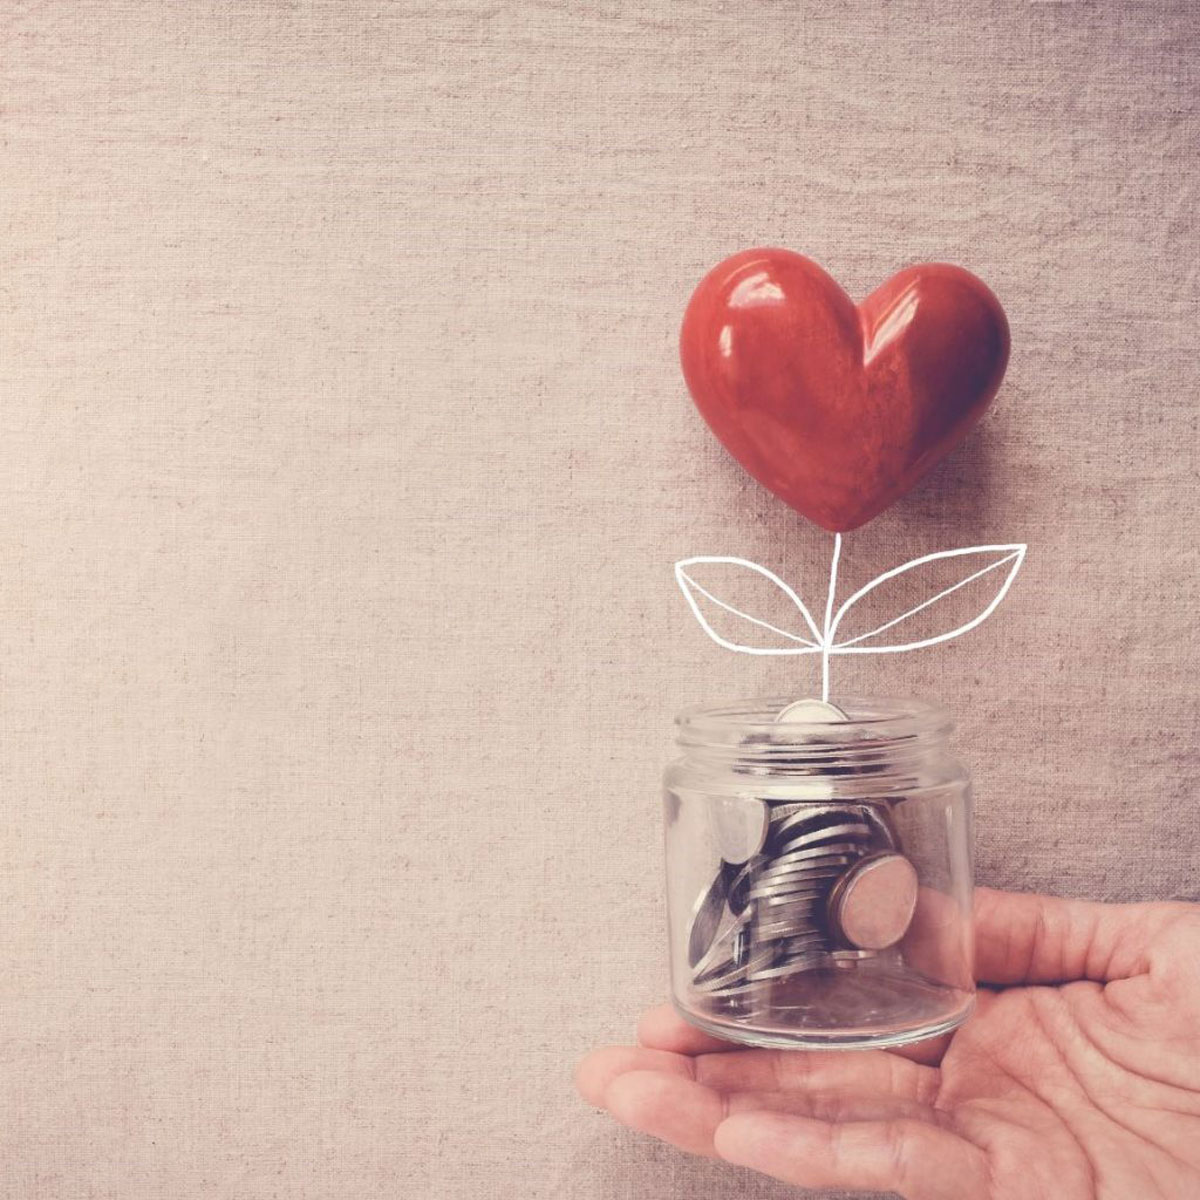 Heart in a jar full of coins